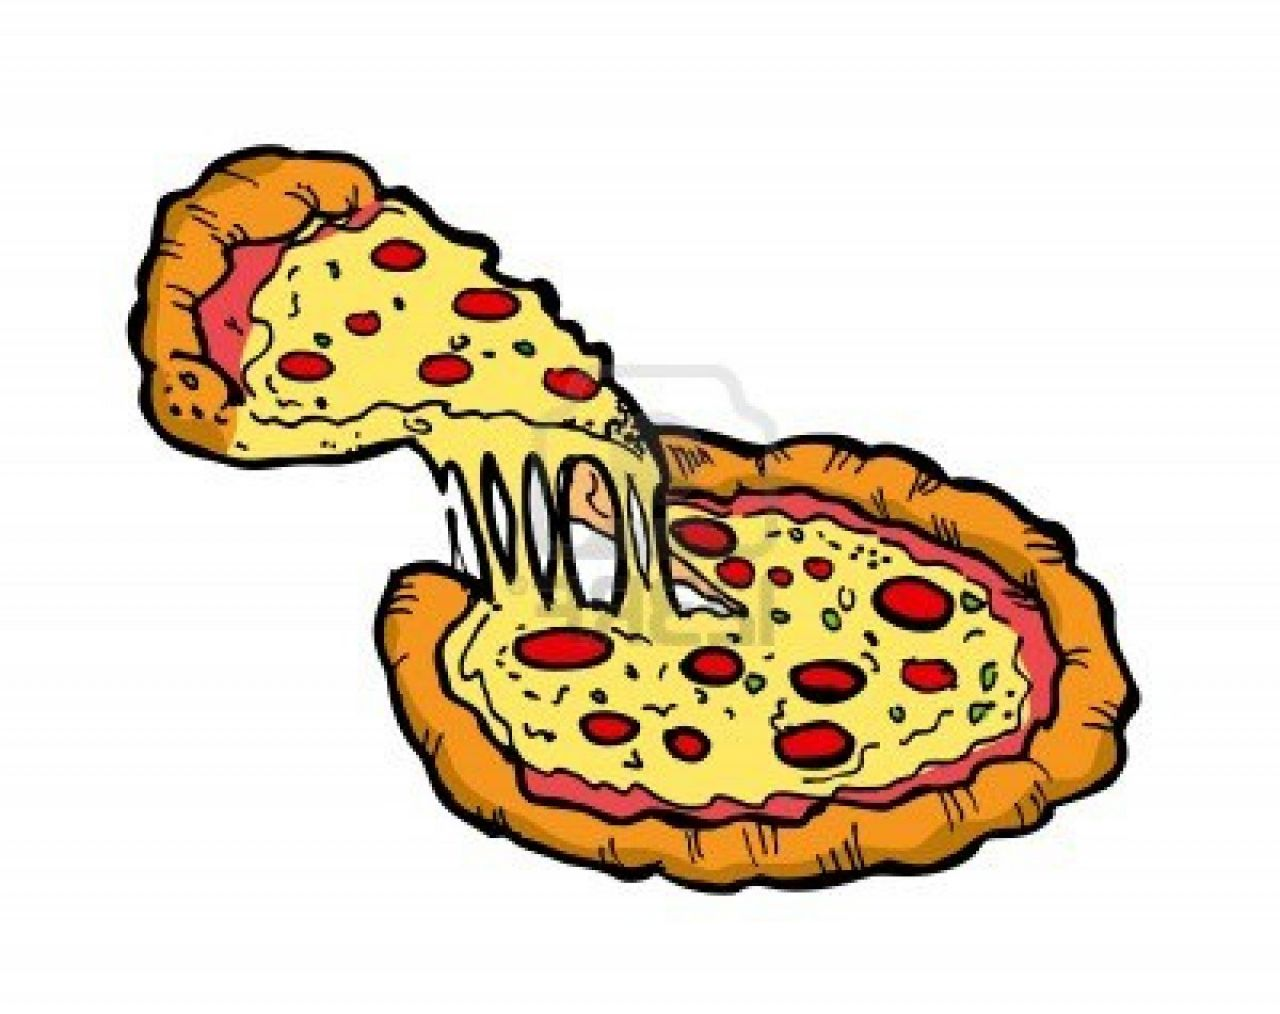 91+ Free Clipart Pizza.